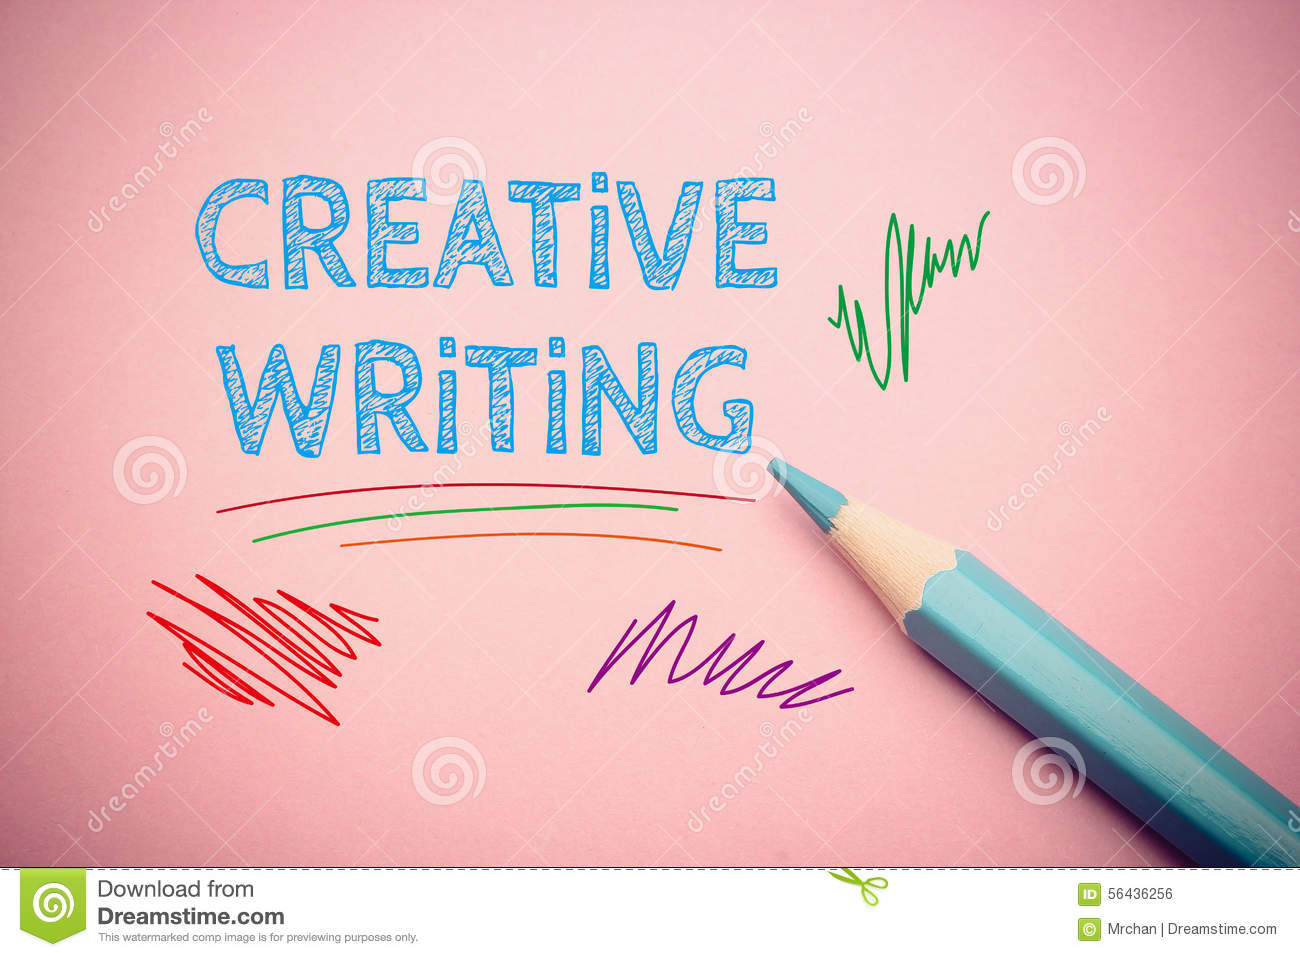 Creative Writing or Business?